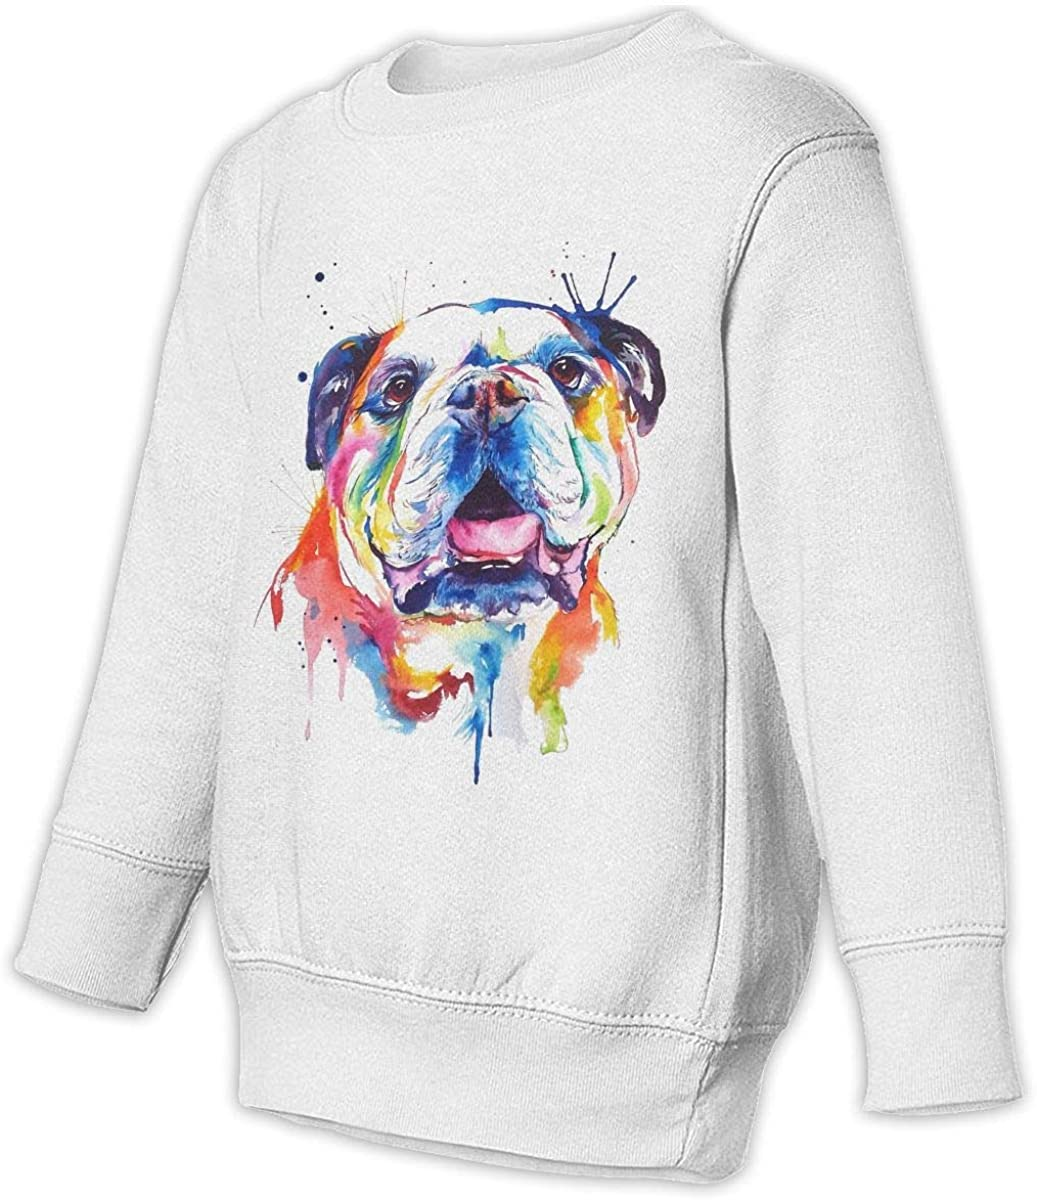 wudici Watercolor Dog Boys Girls Pullover Sweaters Crewneck Sweatshirts Clothes for 2-6 Years Old Children